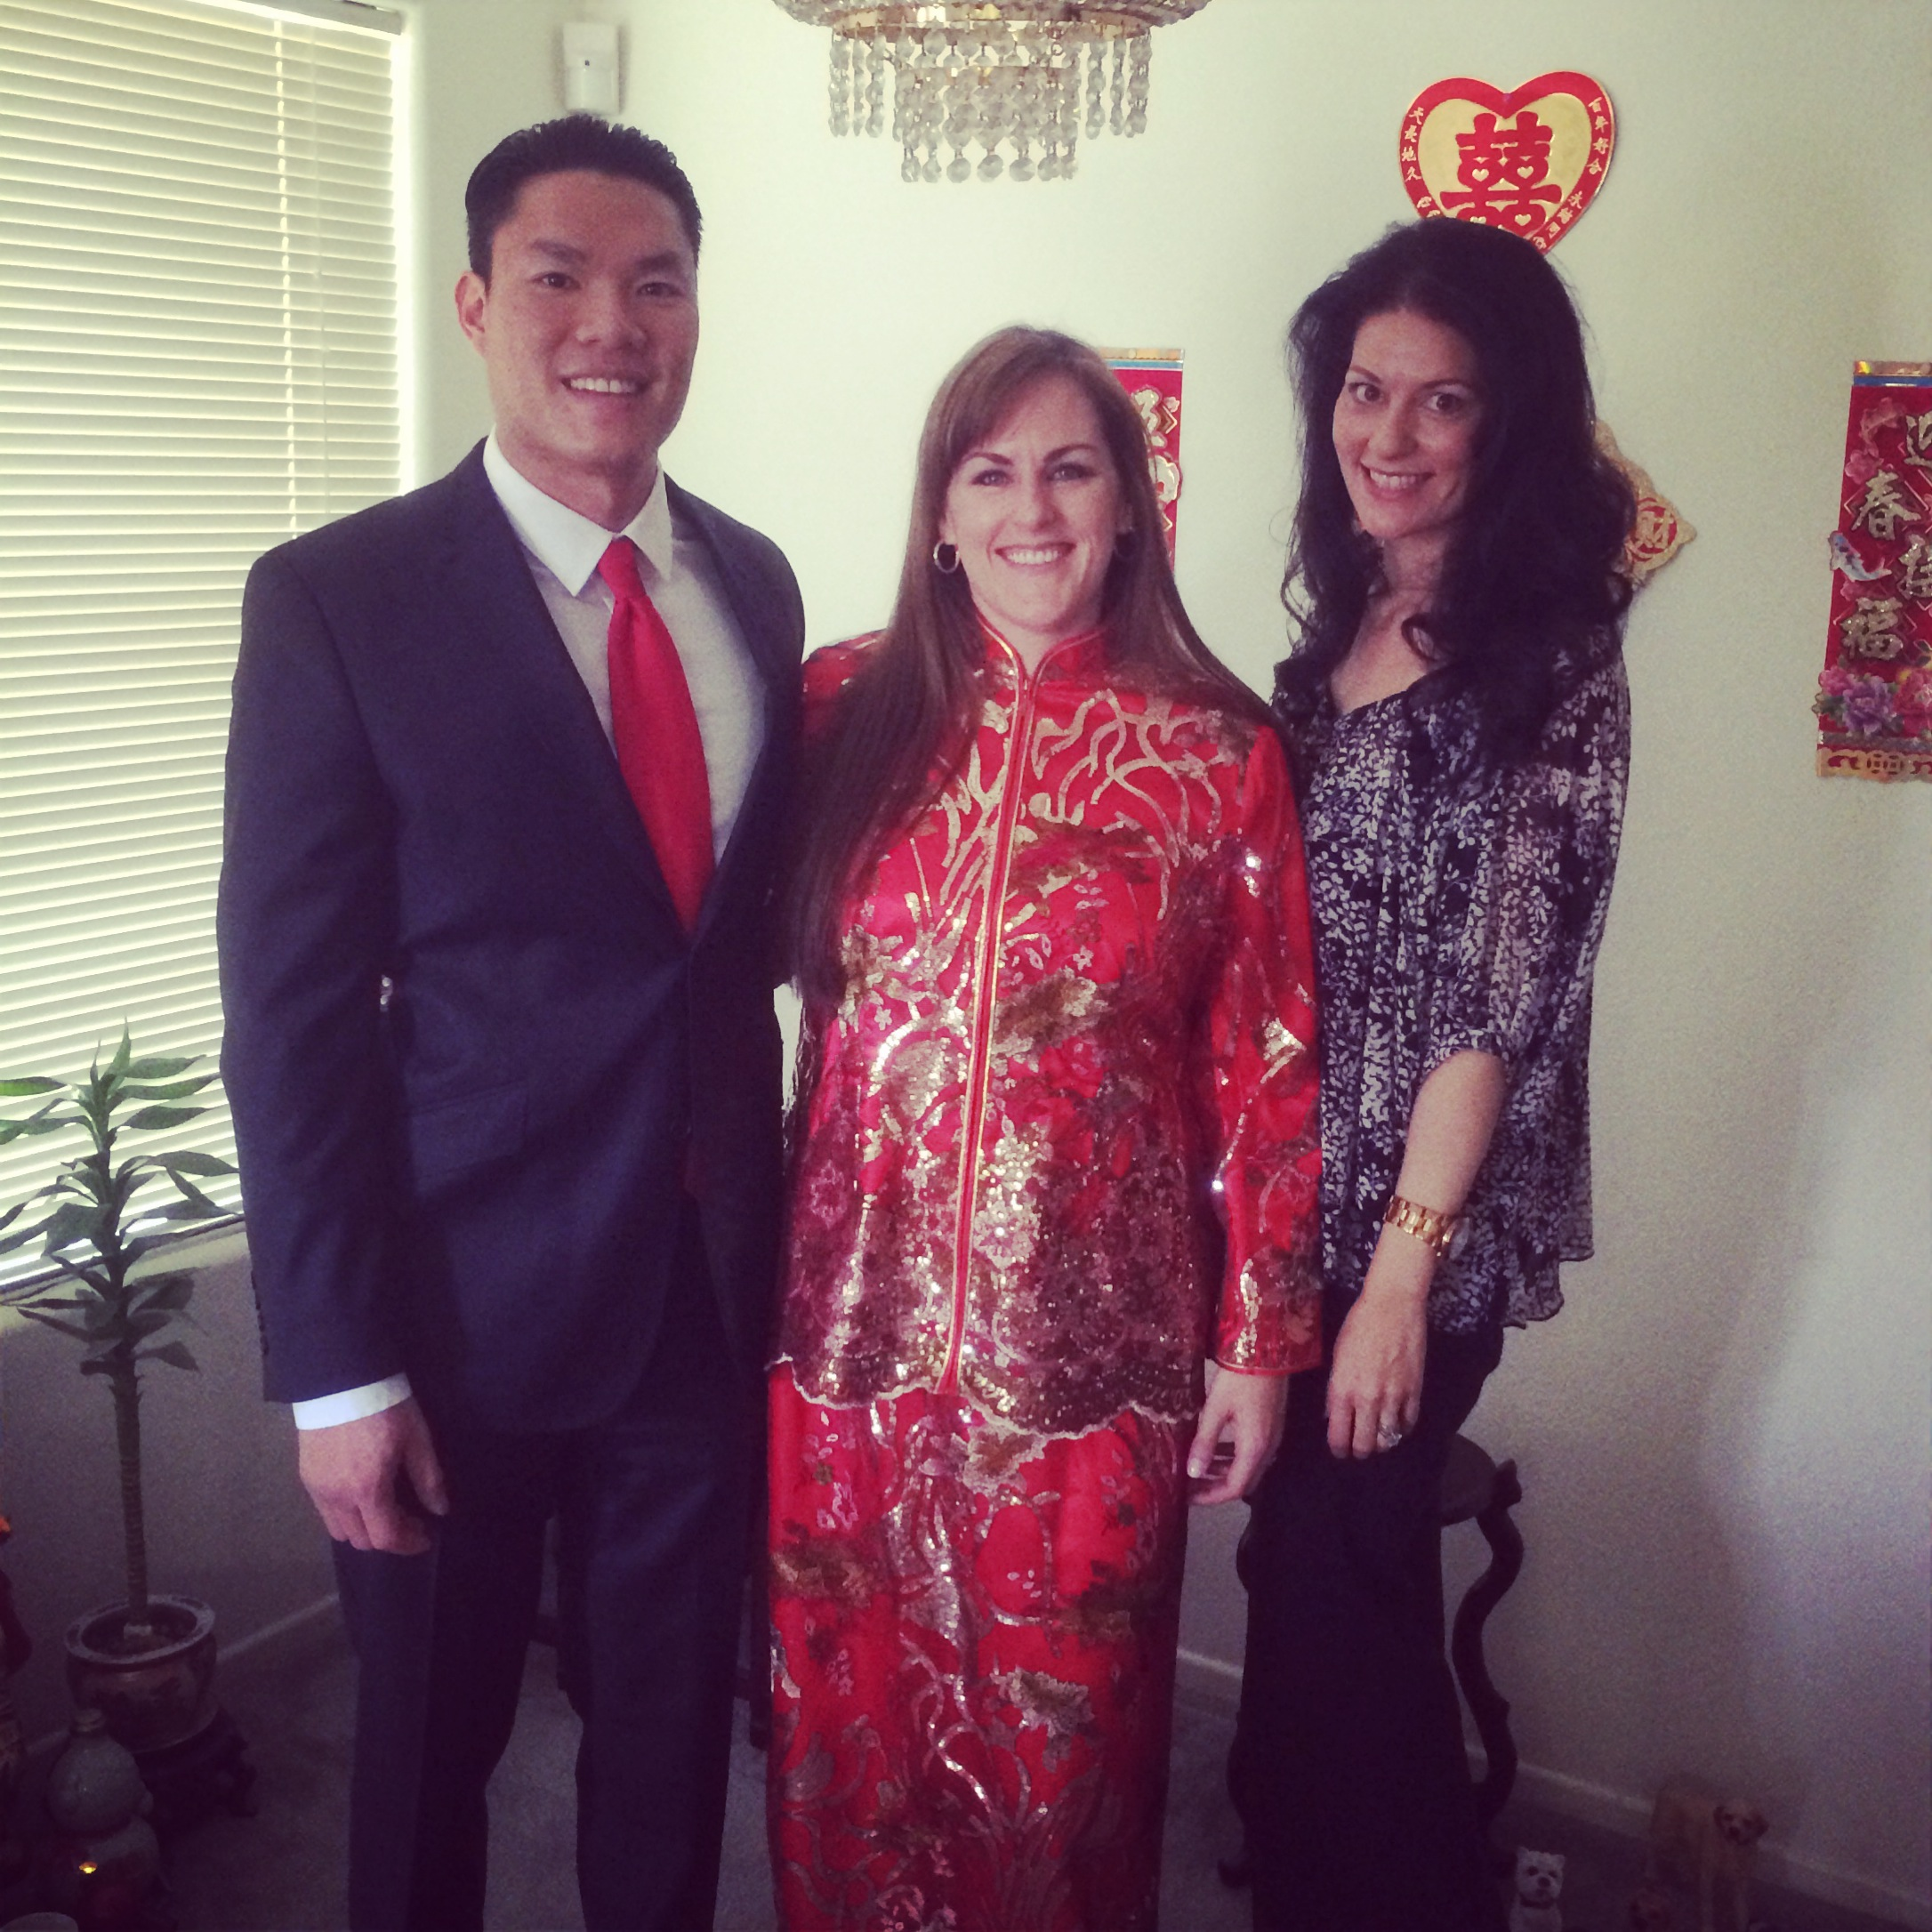 I was lucky to be invited to the Chinese Tea Wedding Ceremony, and stole a quick moment with the soon to be Mr. & Mrs. Tran. Photo by Andrea Eppolito.